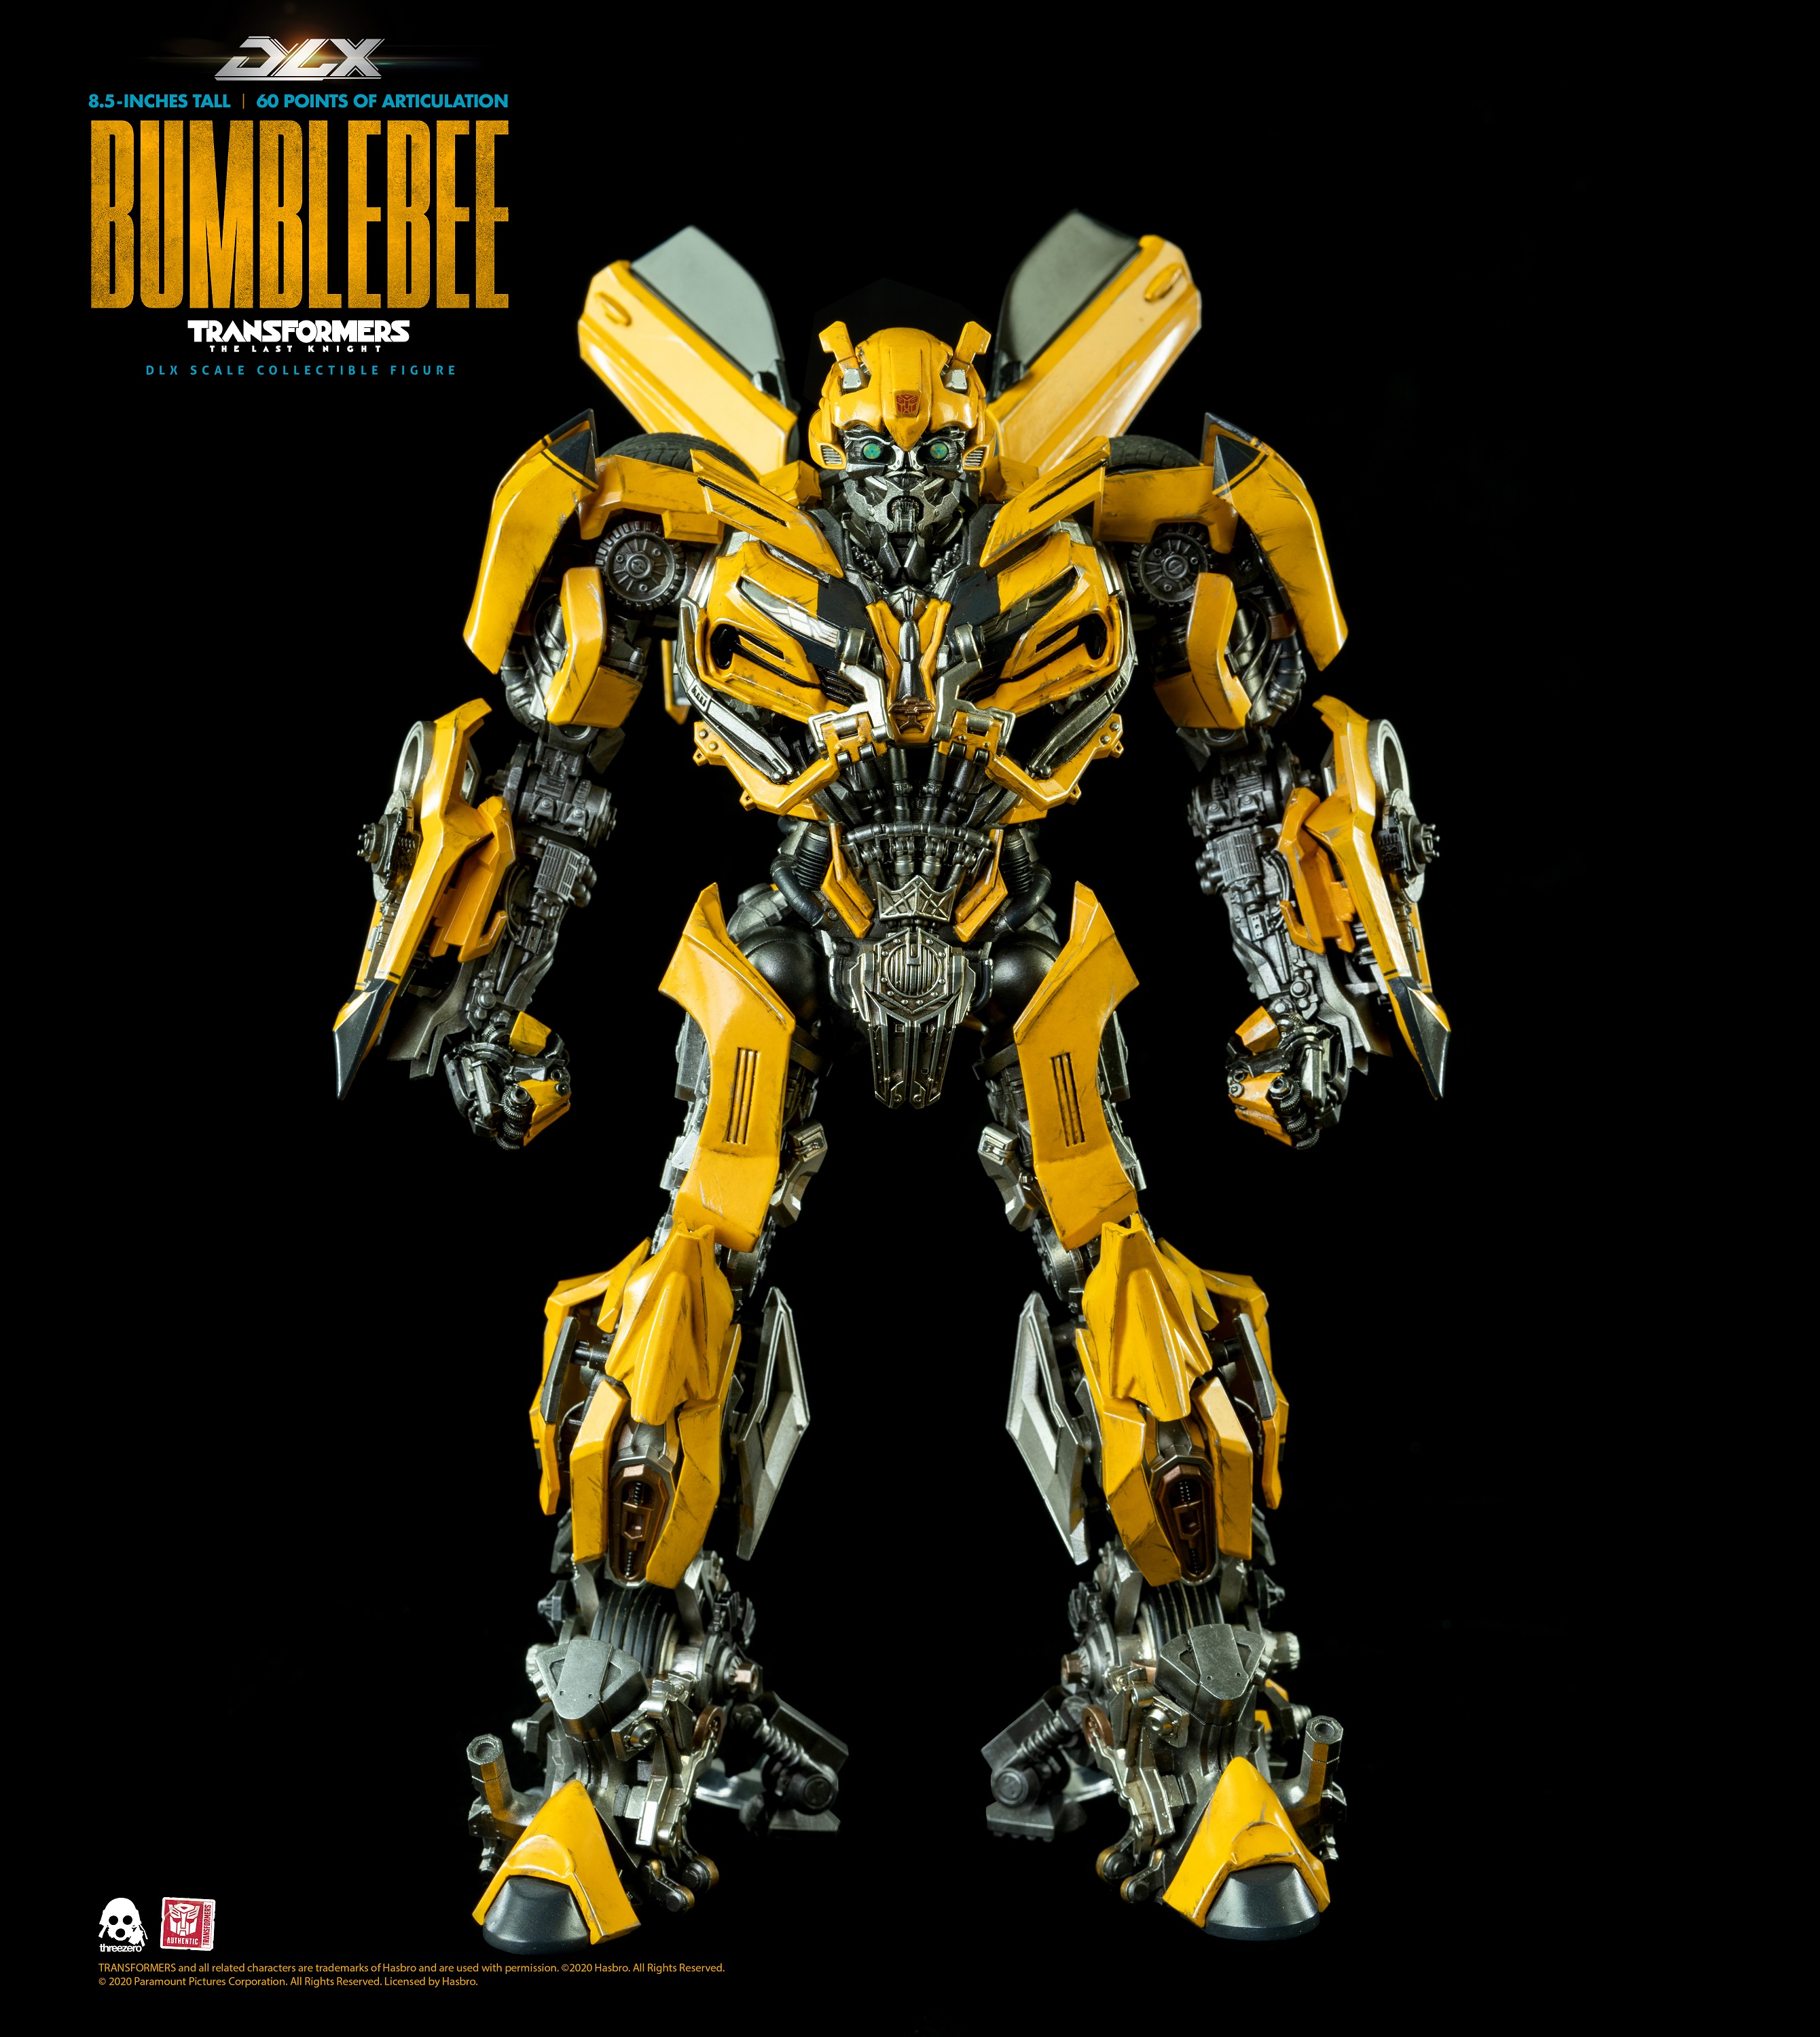 ThreeZero - Bumblebee - Transformers: The last knight - DLX Scale |  Transformers | 3Zero / 3A